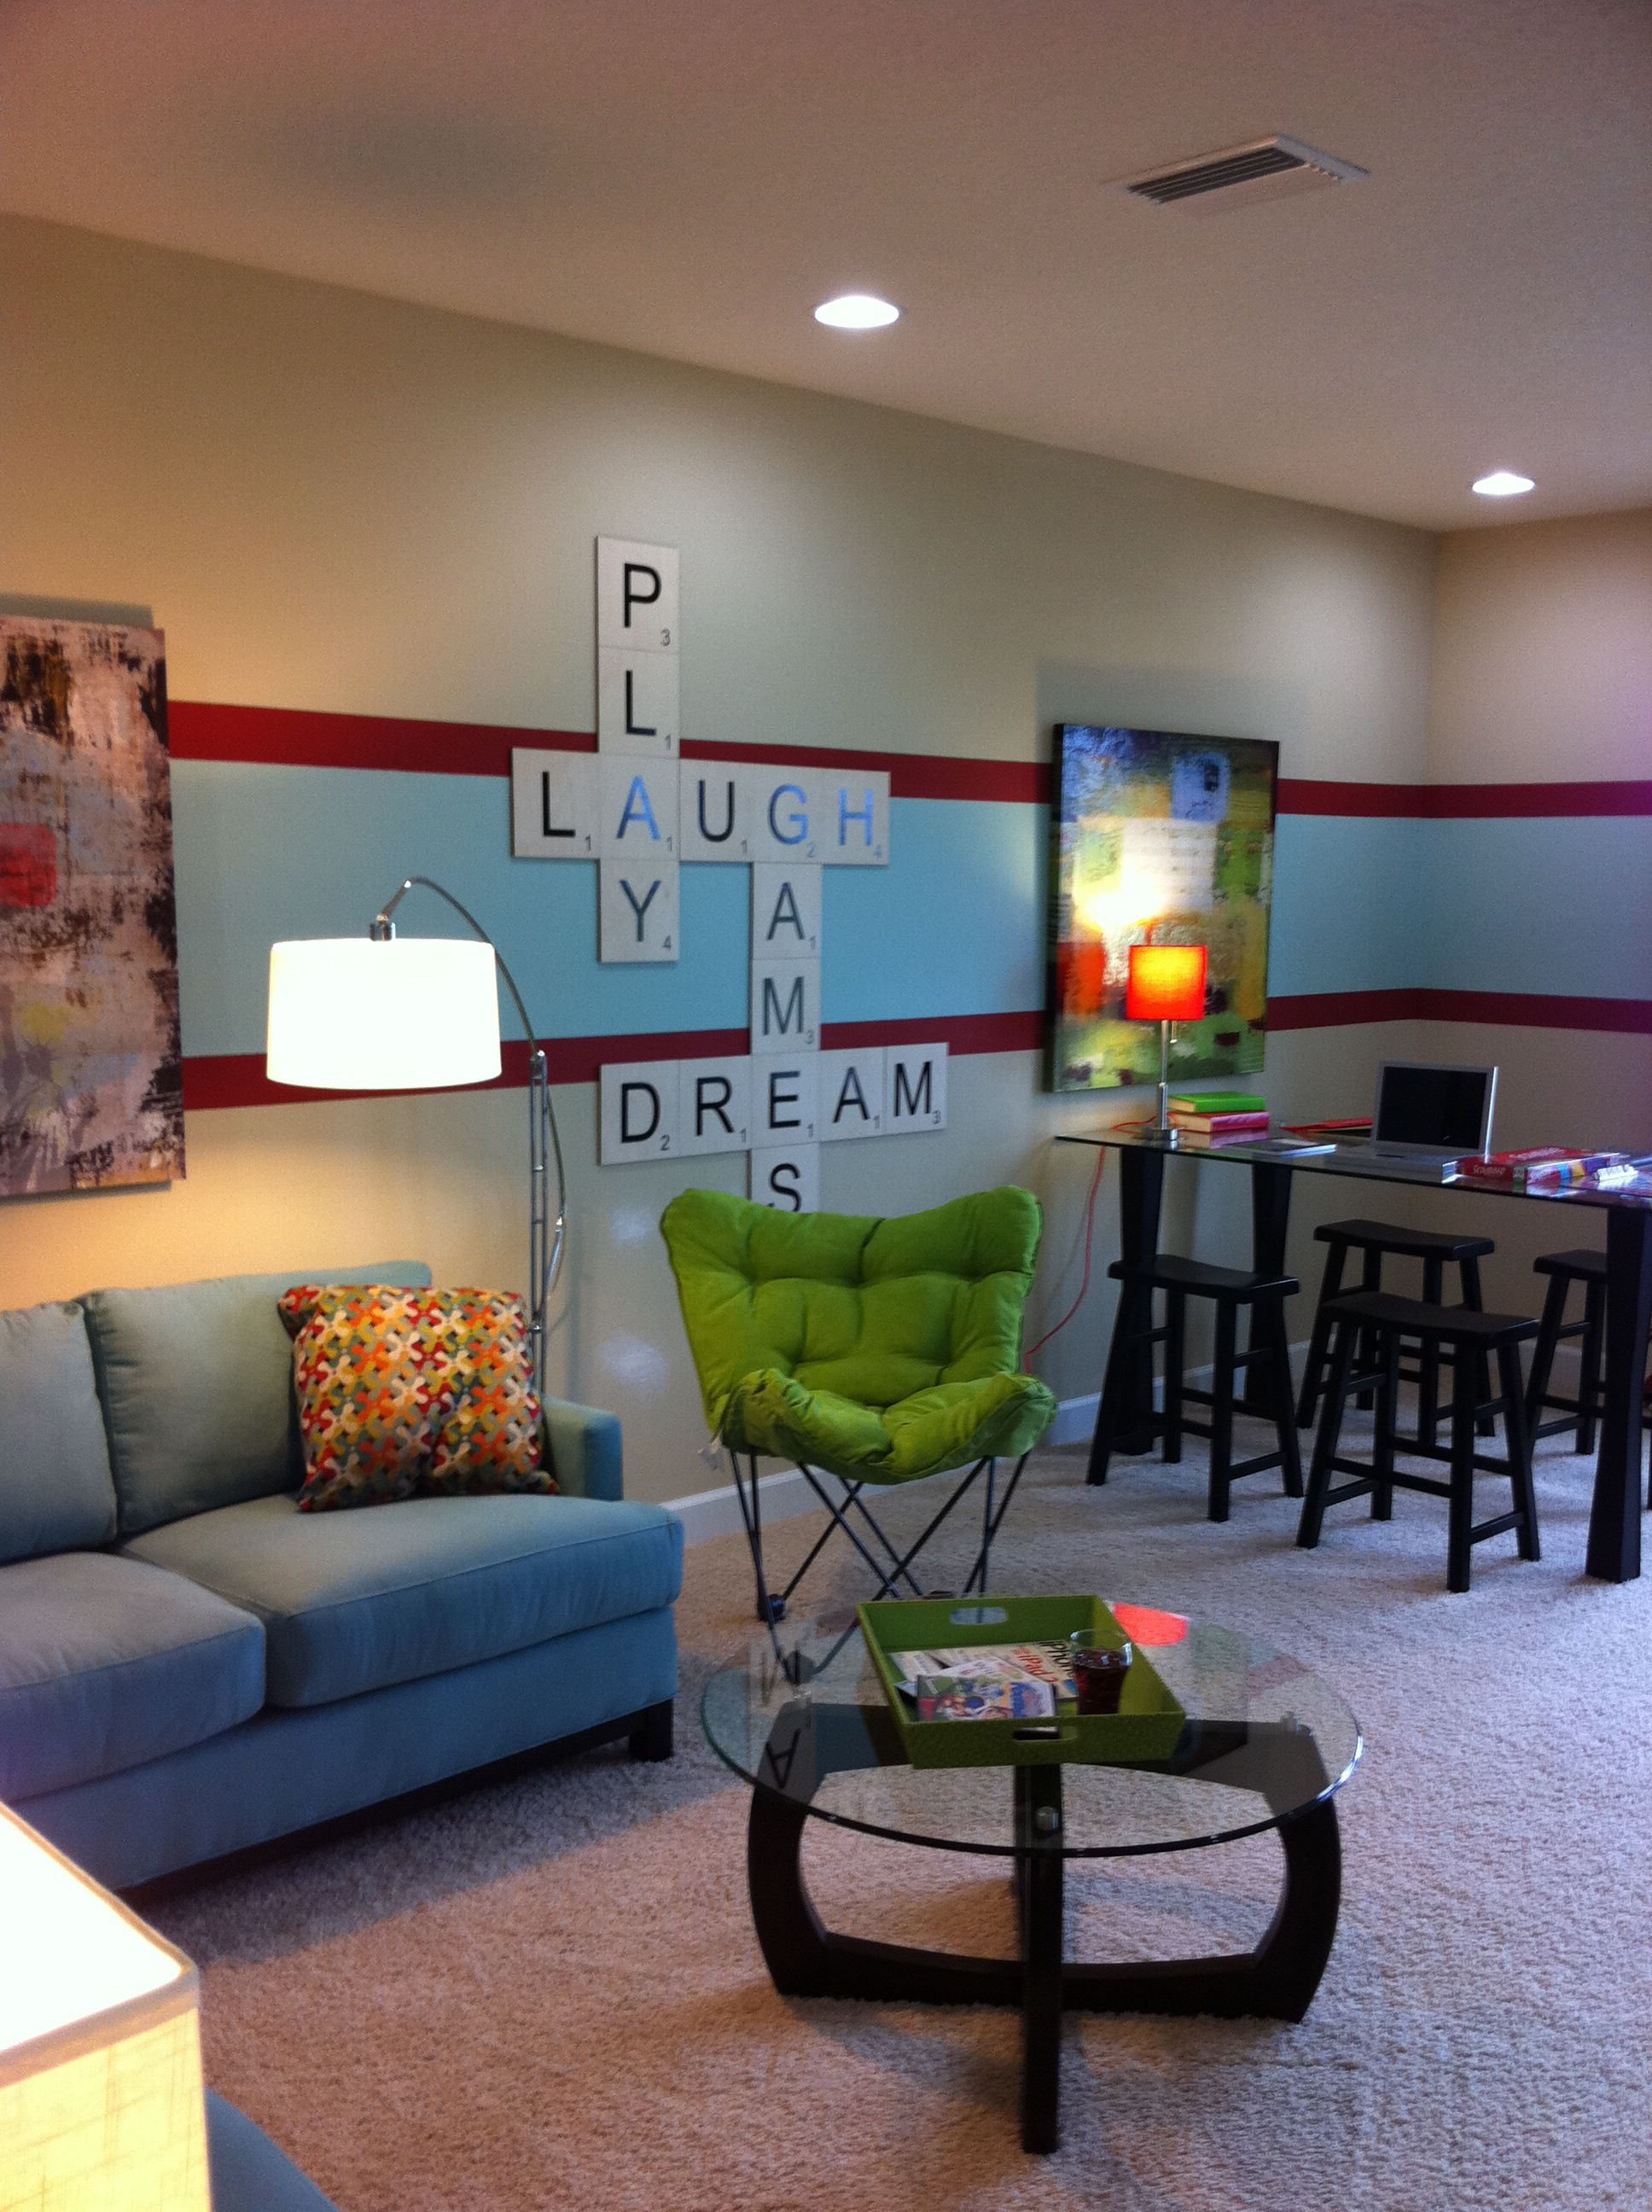 Game Room Kids Play Room Love The Scrabble Letters So